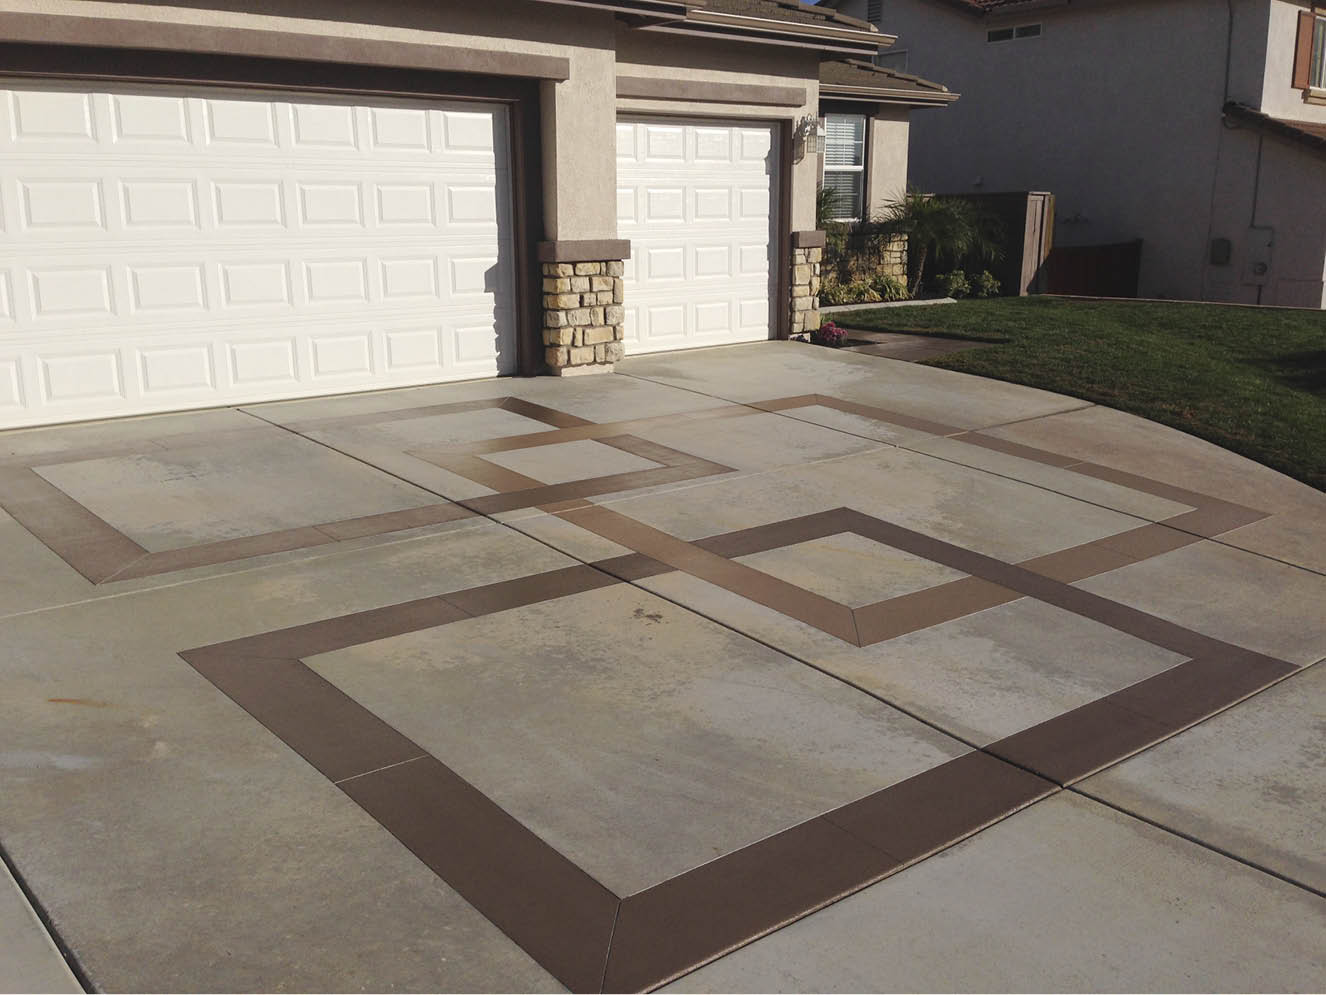 Geometric designs show off this driveway.